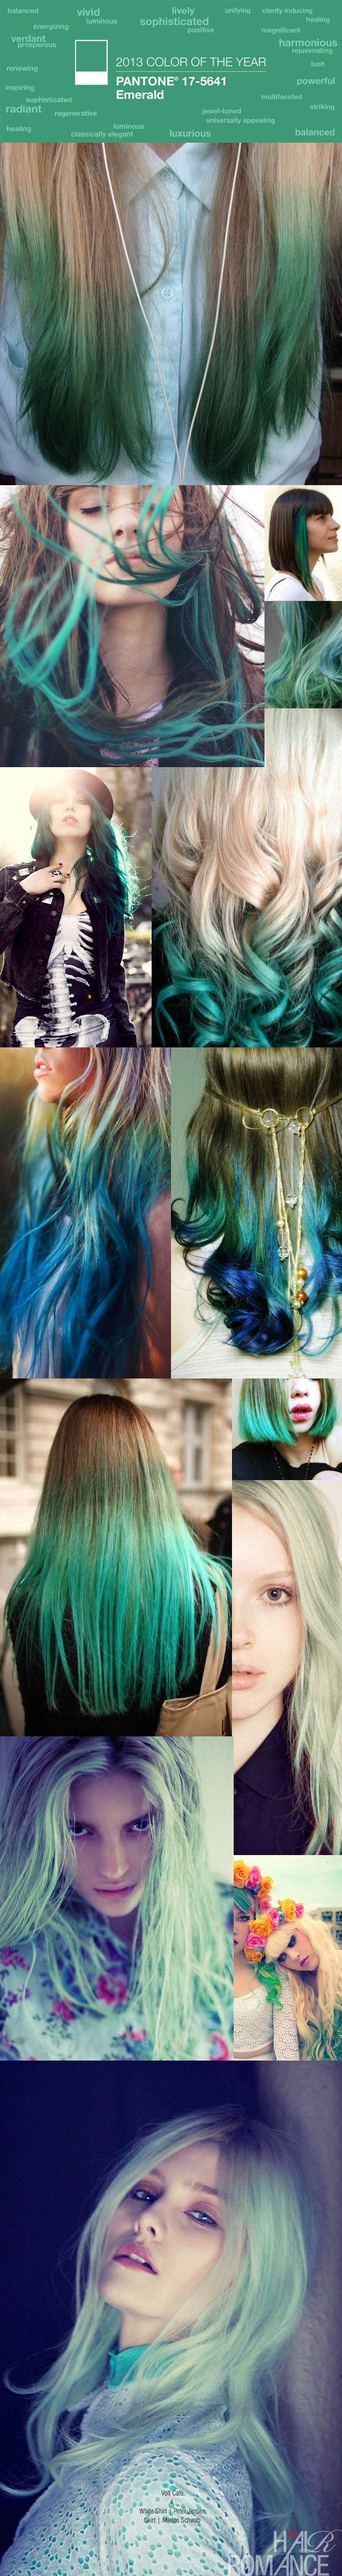 Pantone - Emerald - Color of the year 2013 - Hair Romance